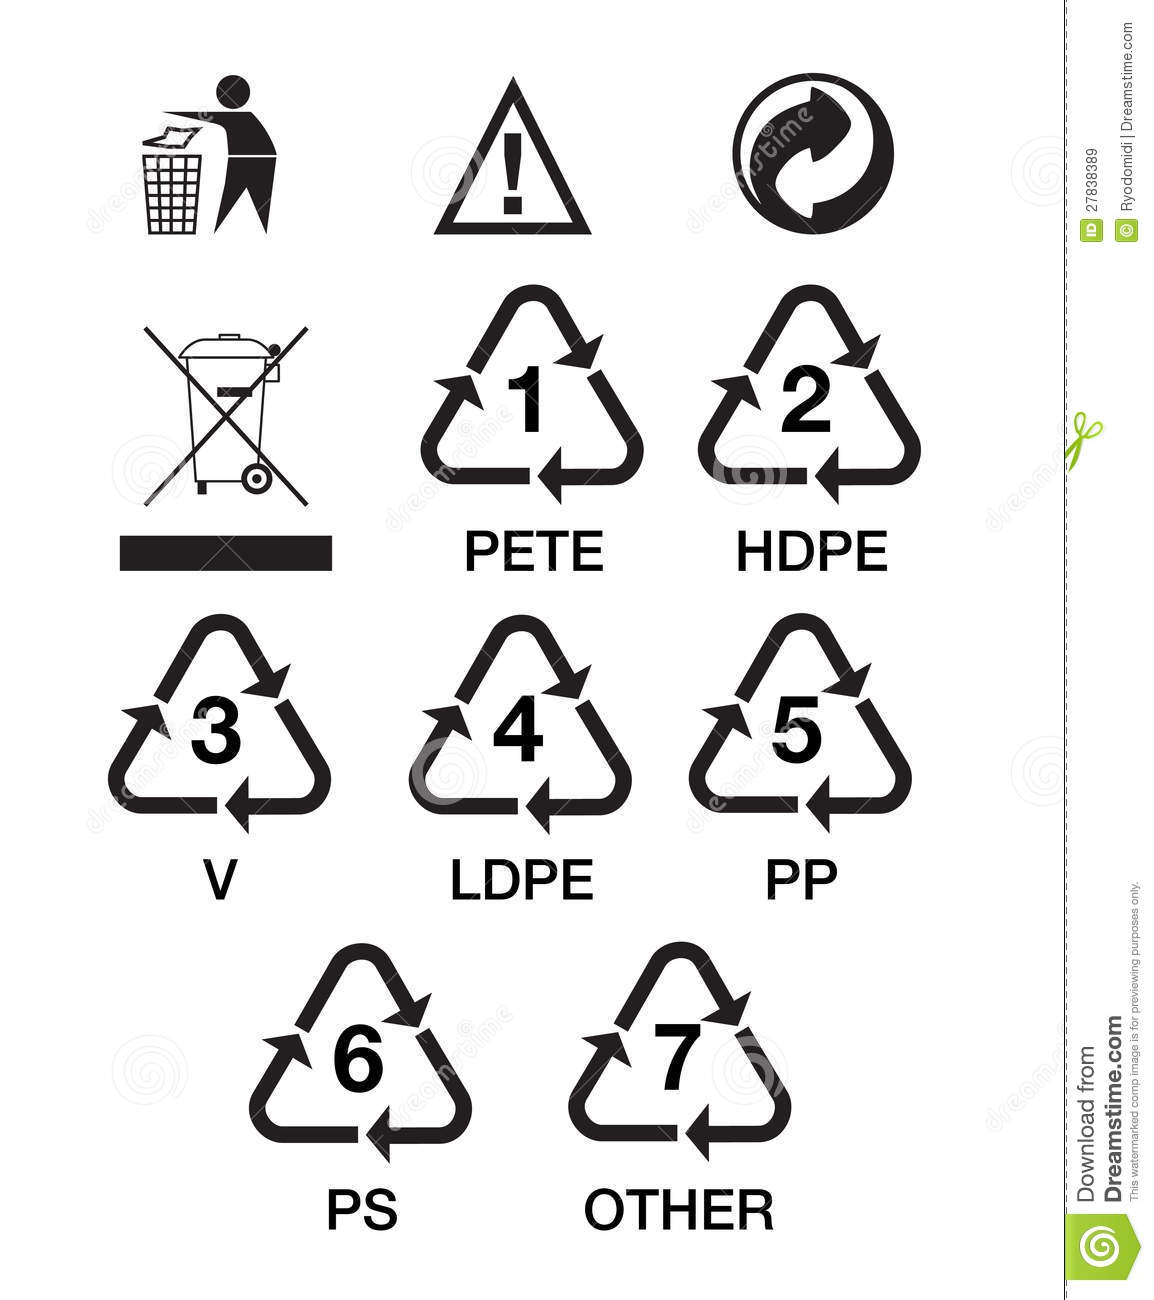 Plastic Pet Symbols Royalty Free Stock Images